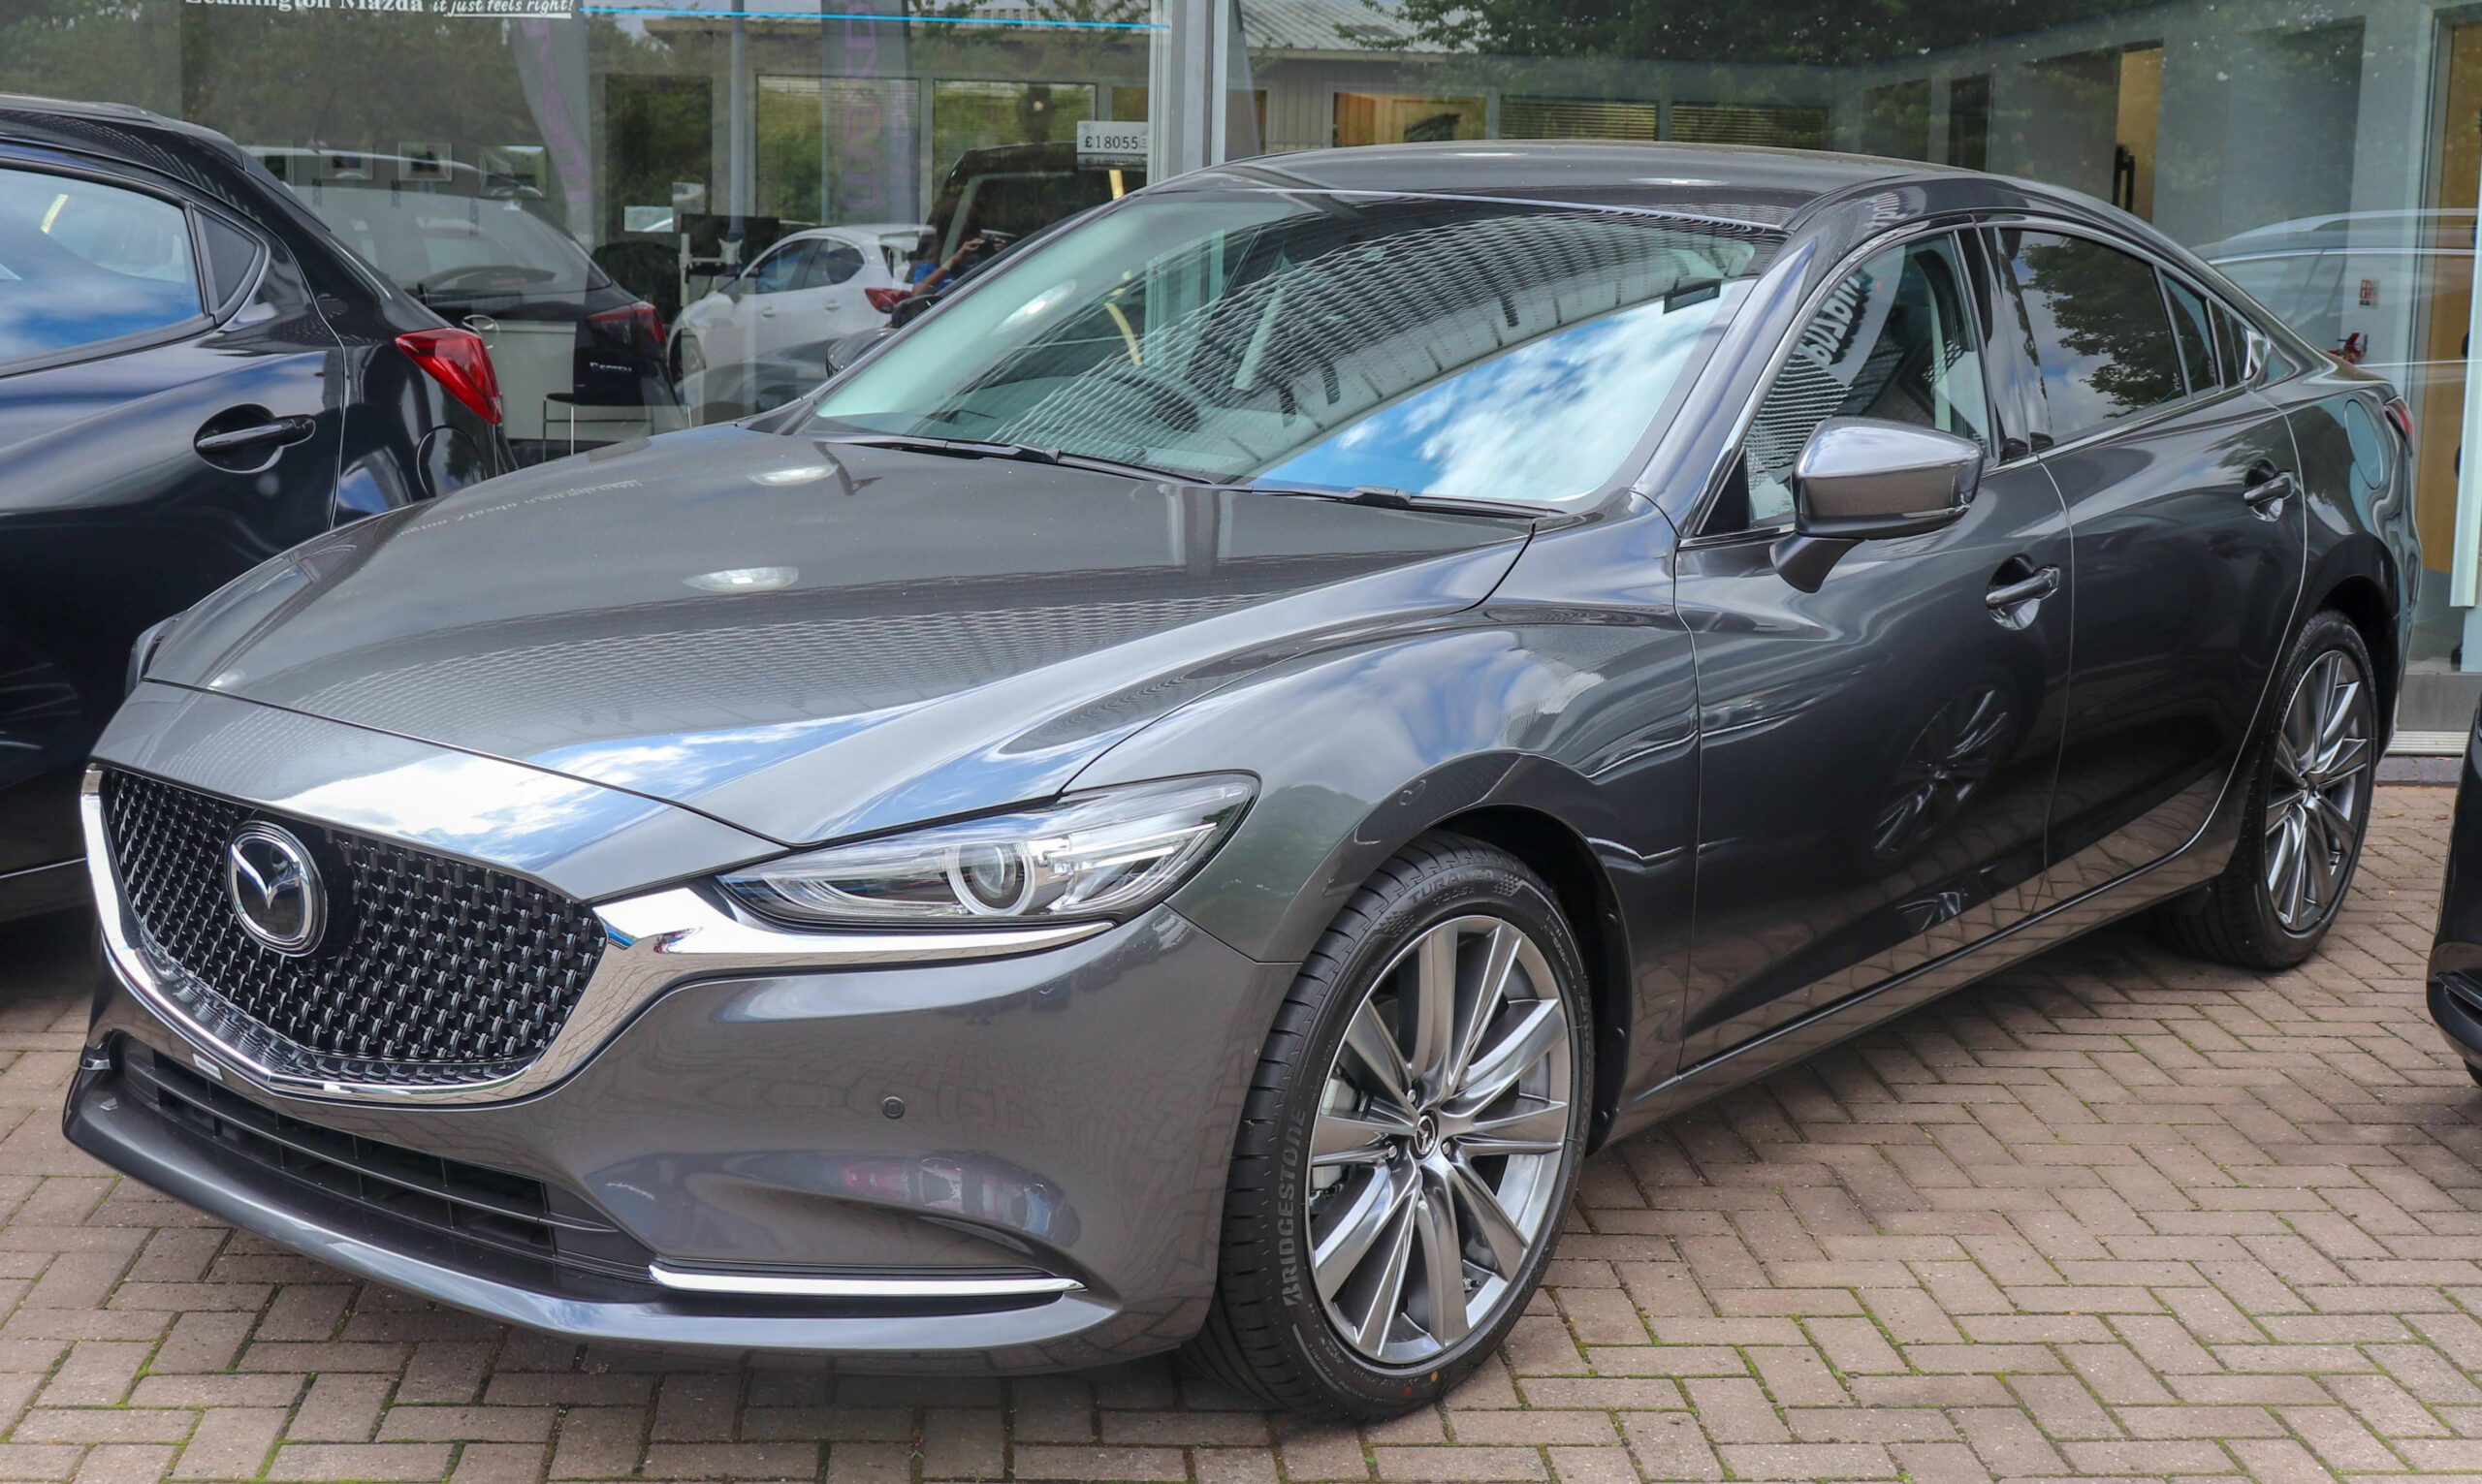 8 New 8 Mazda 8 All Wheel Drive Picture by 8 Mazda 8 All ...